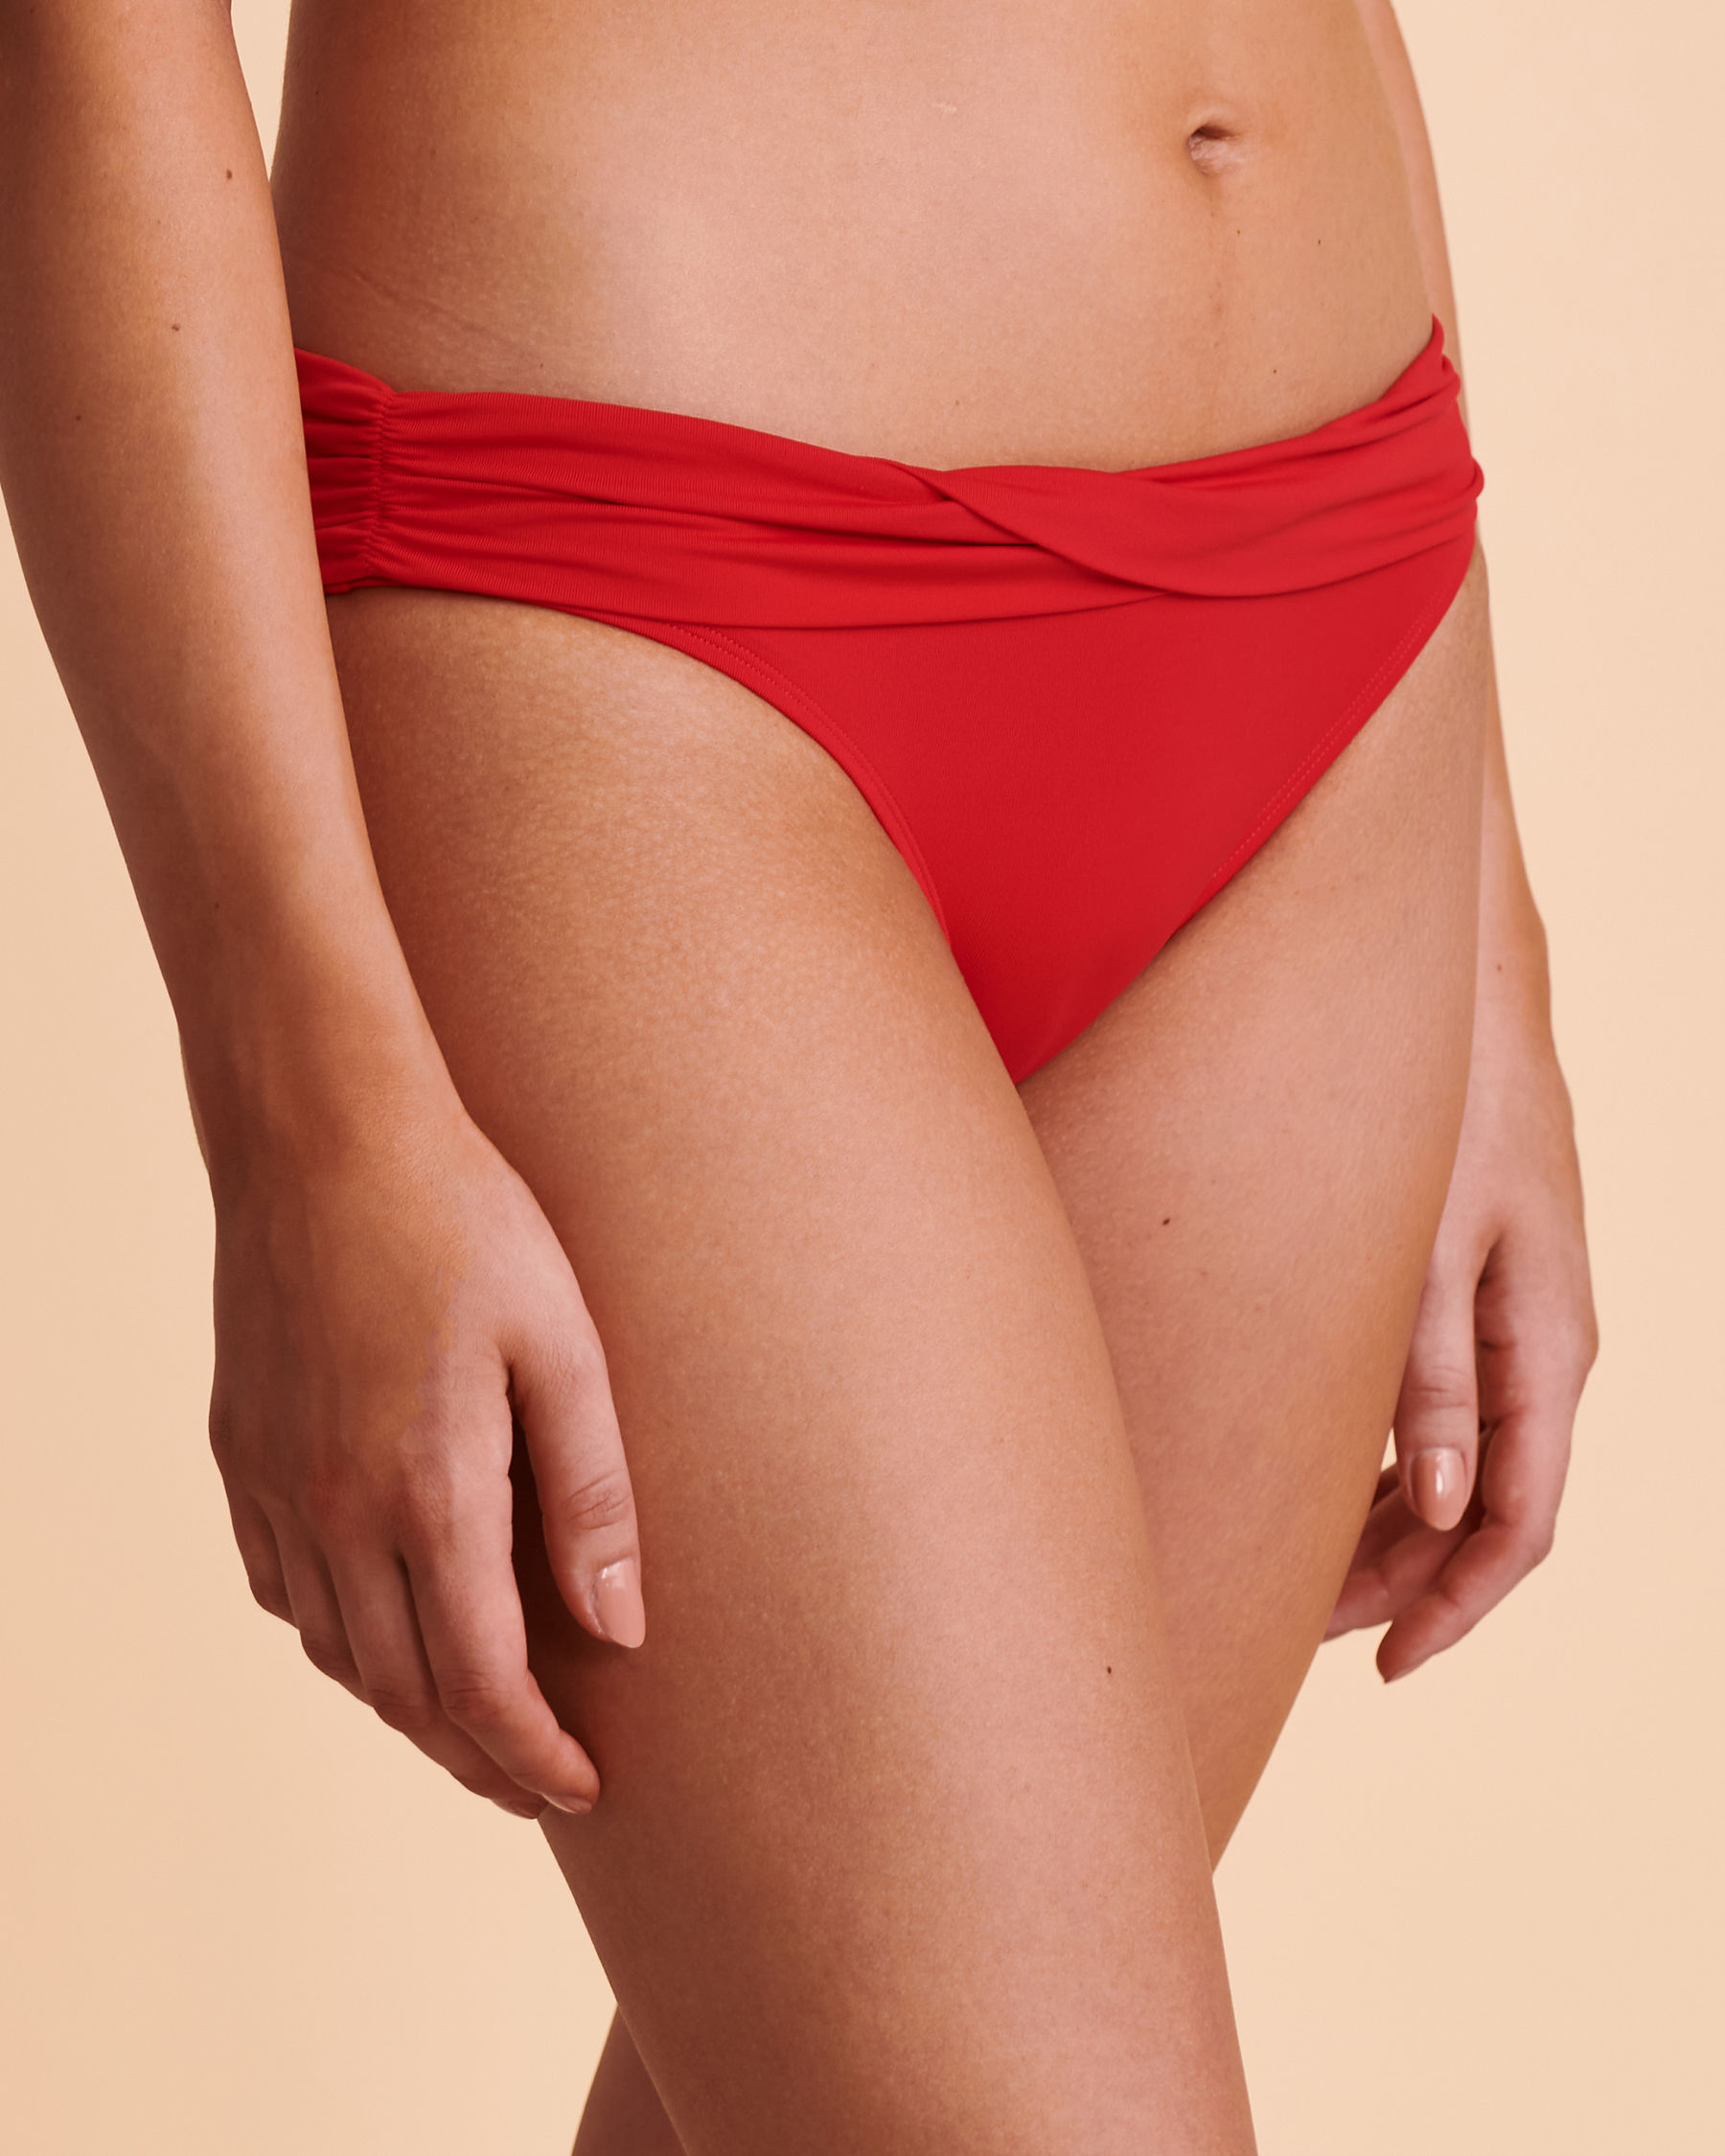 TURQUOISE COUTURE SOLID Foldable Waistband Bikini Bottom Red 01300007 - View3